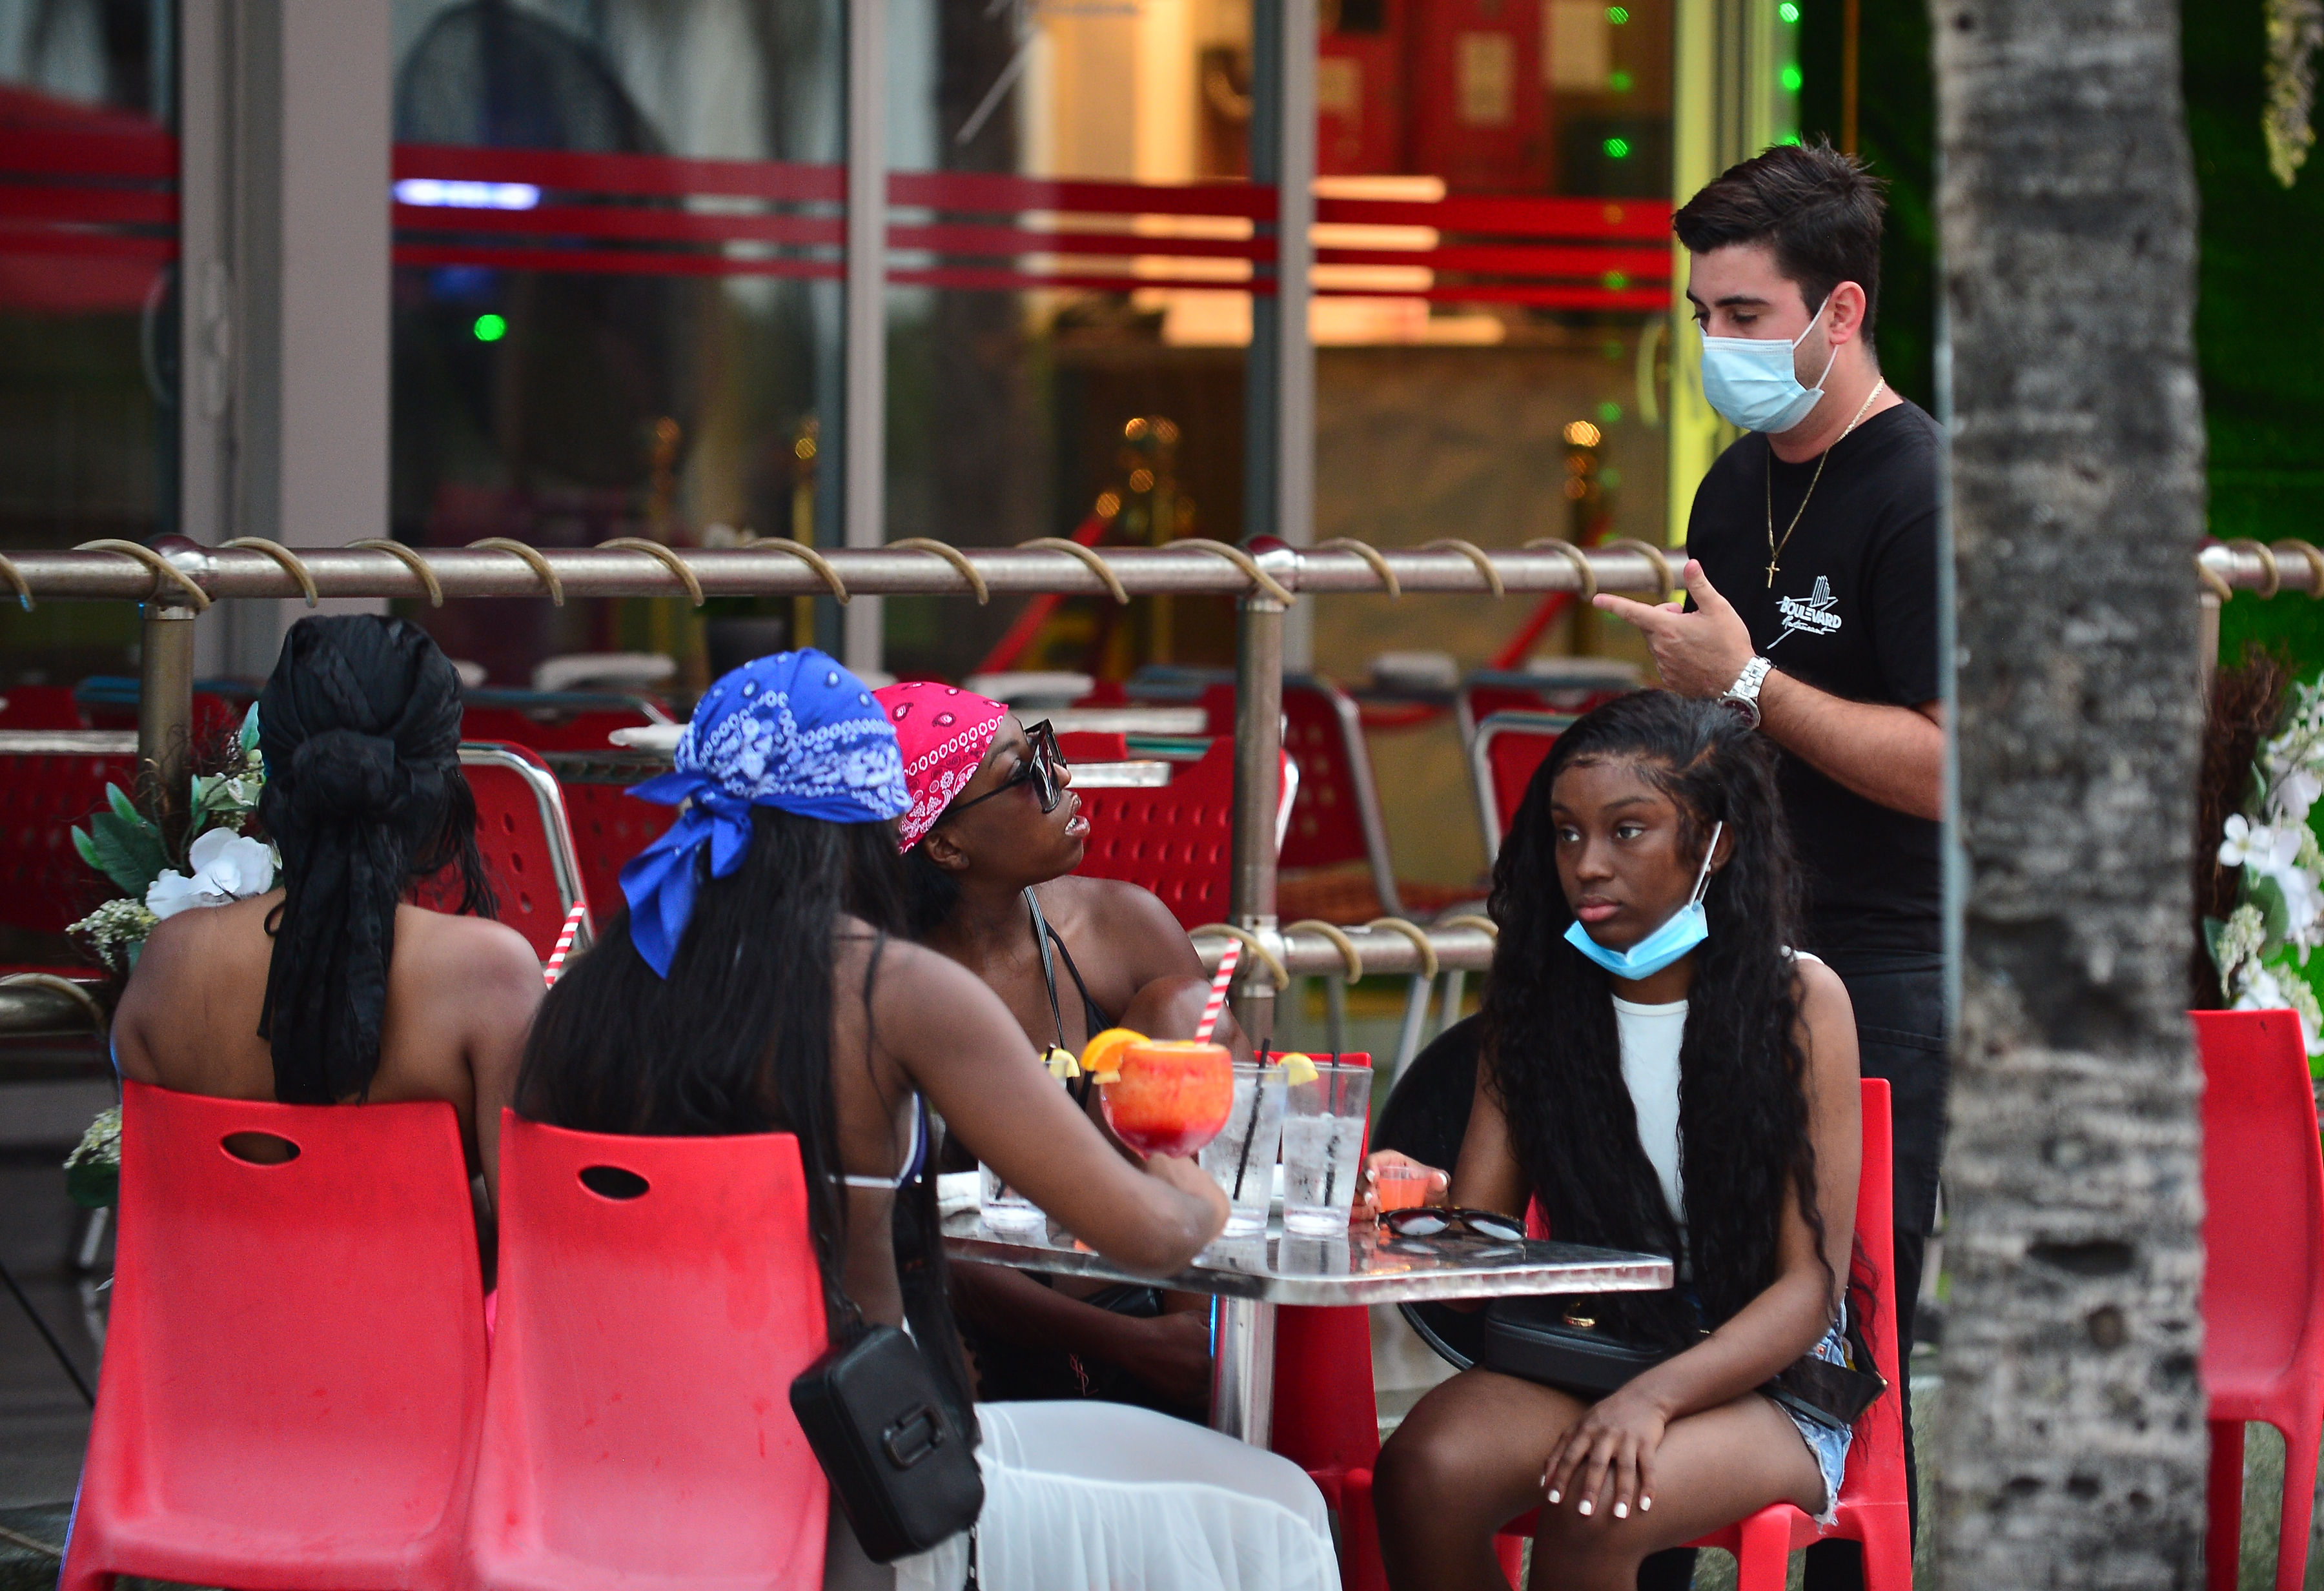 Florida coronavirus cases have increased over 900 percent since the state reopened